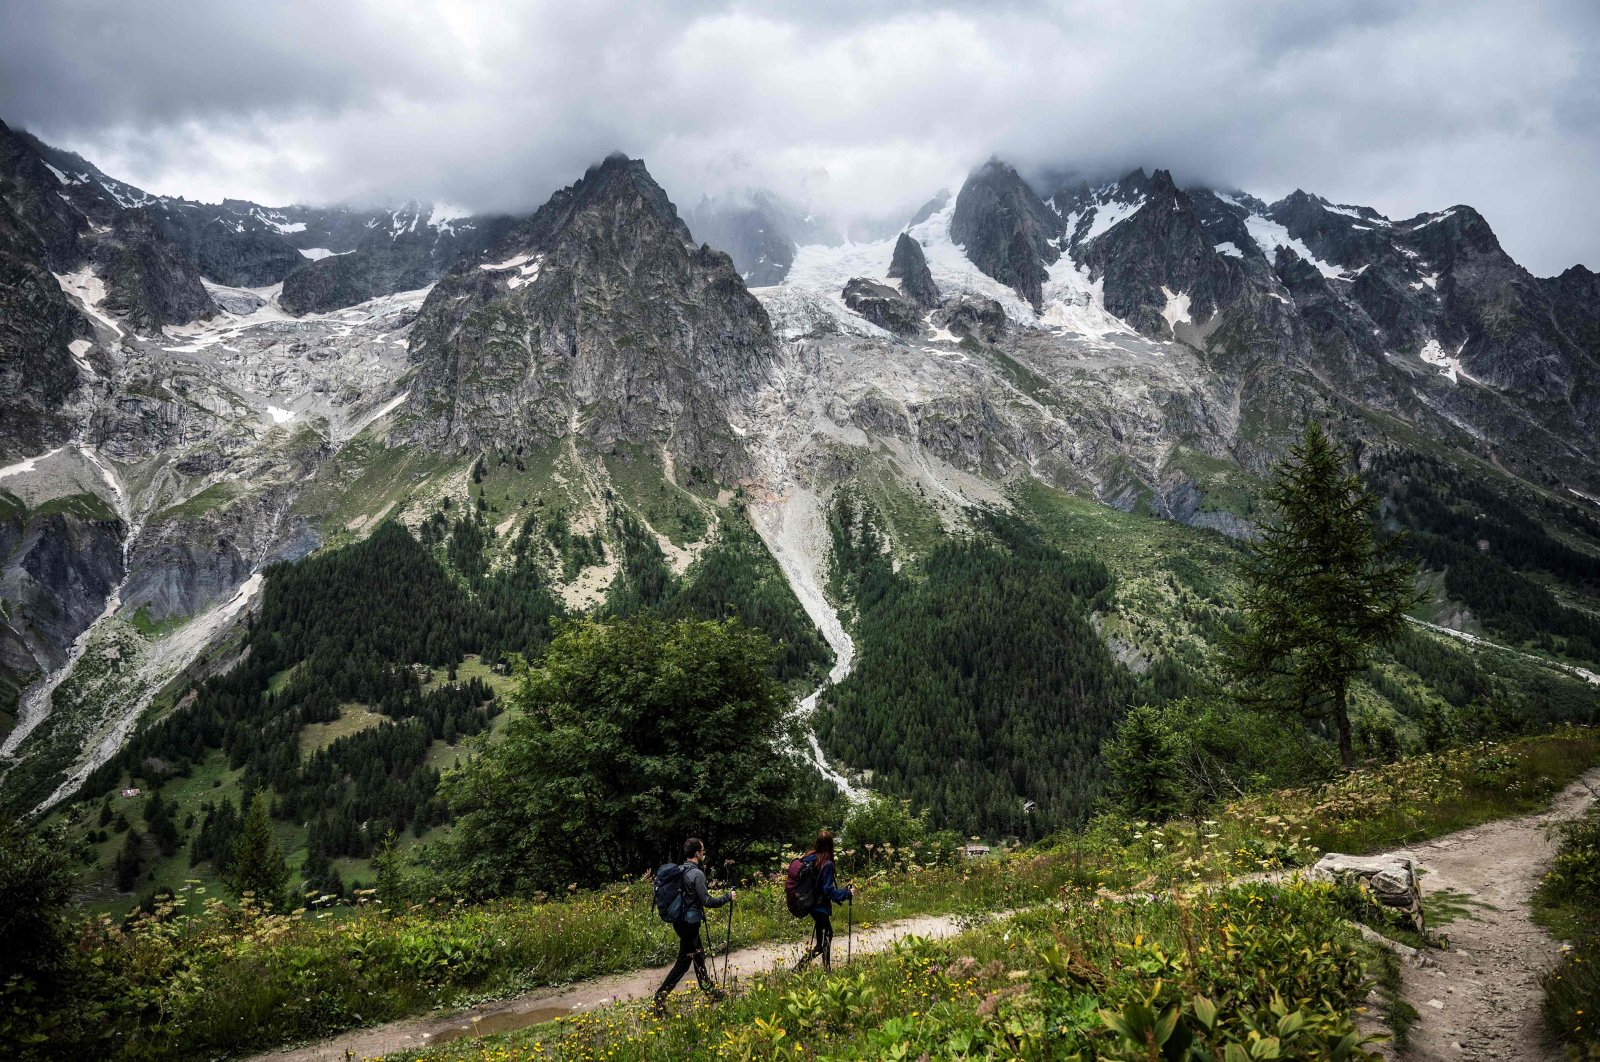 Hikers walk on a path near the Planpicieux (C) and Grand Jorasses Glaciers (R) in Courmayeur, Alps Region, north-western Italy, Aug. 3, 2021. (AFP Photo)